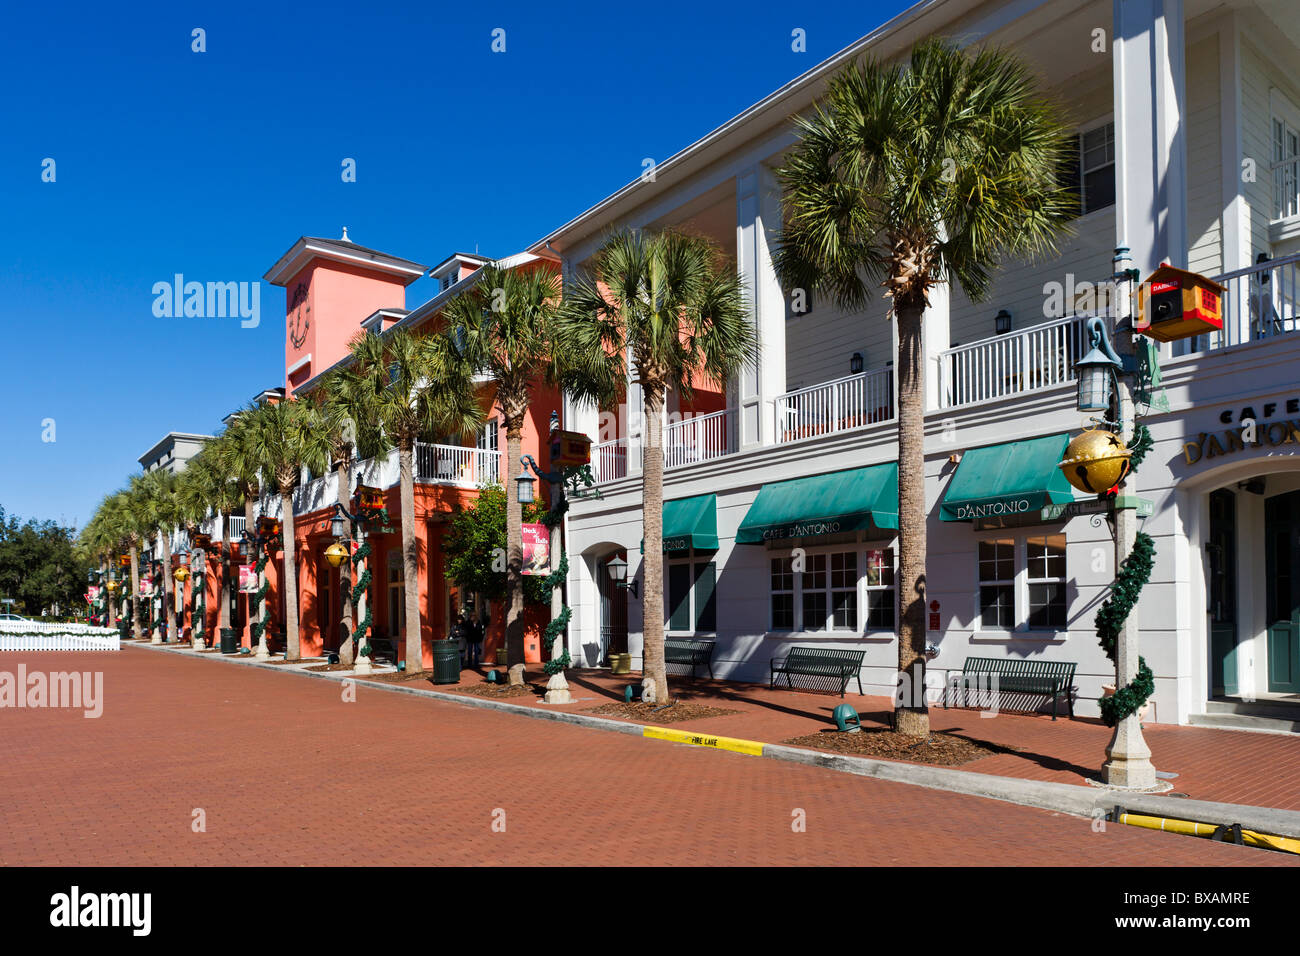 Market Street in the centre of the purpose built township of Celebration, Kissimmee, Orlando, Central Florida, USA - Stock Image